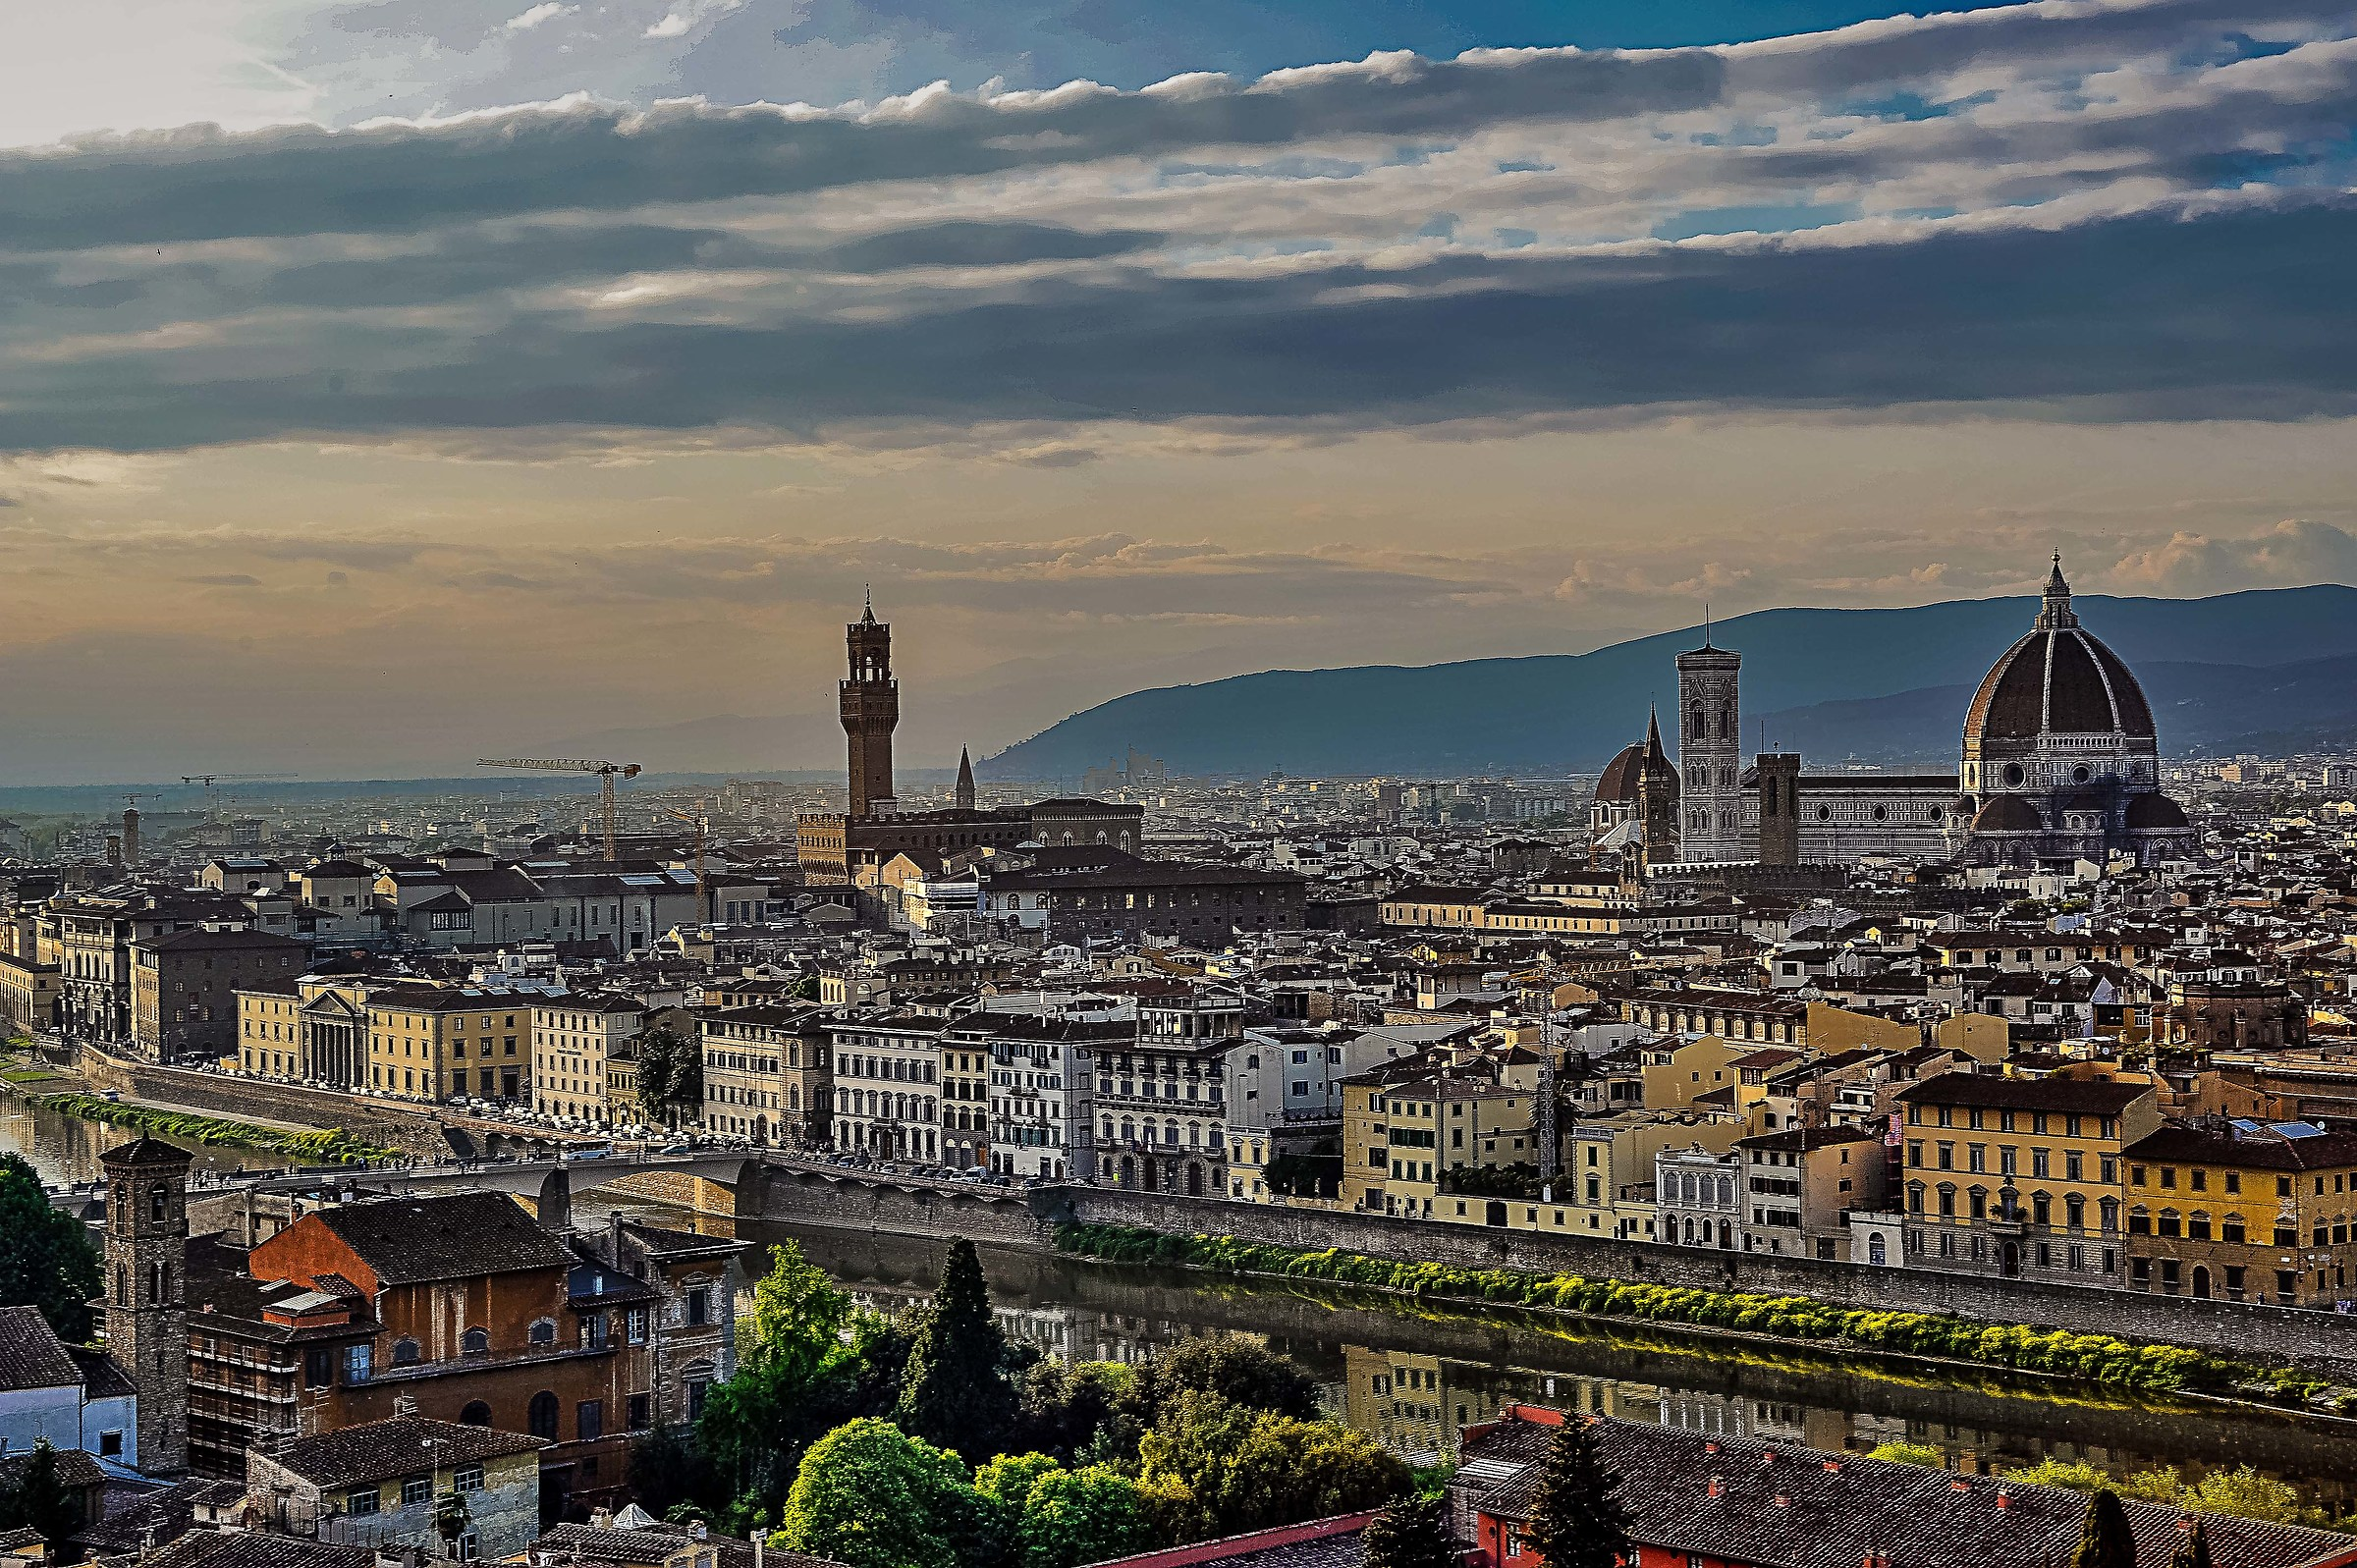 Florence in all its splendor...